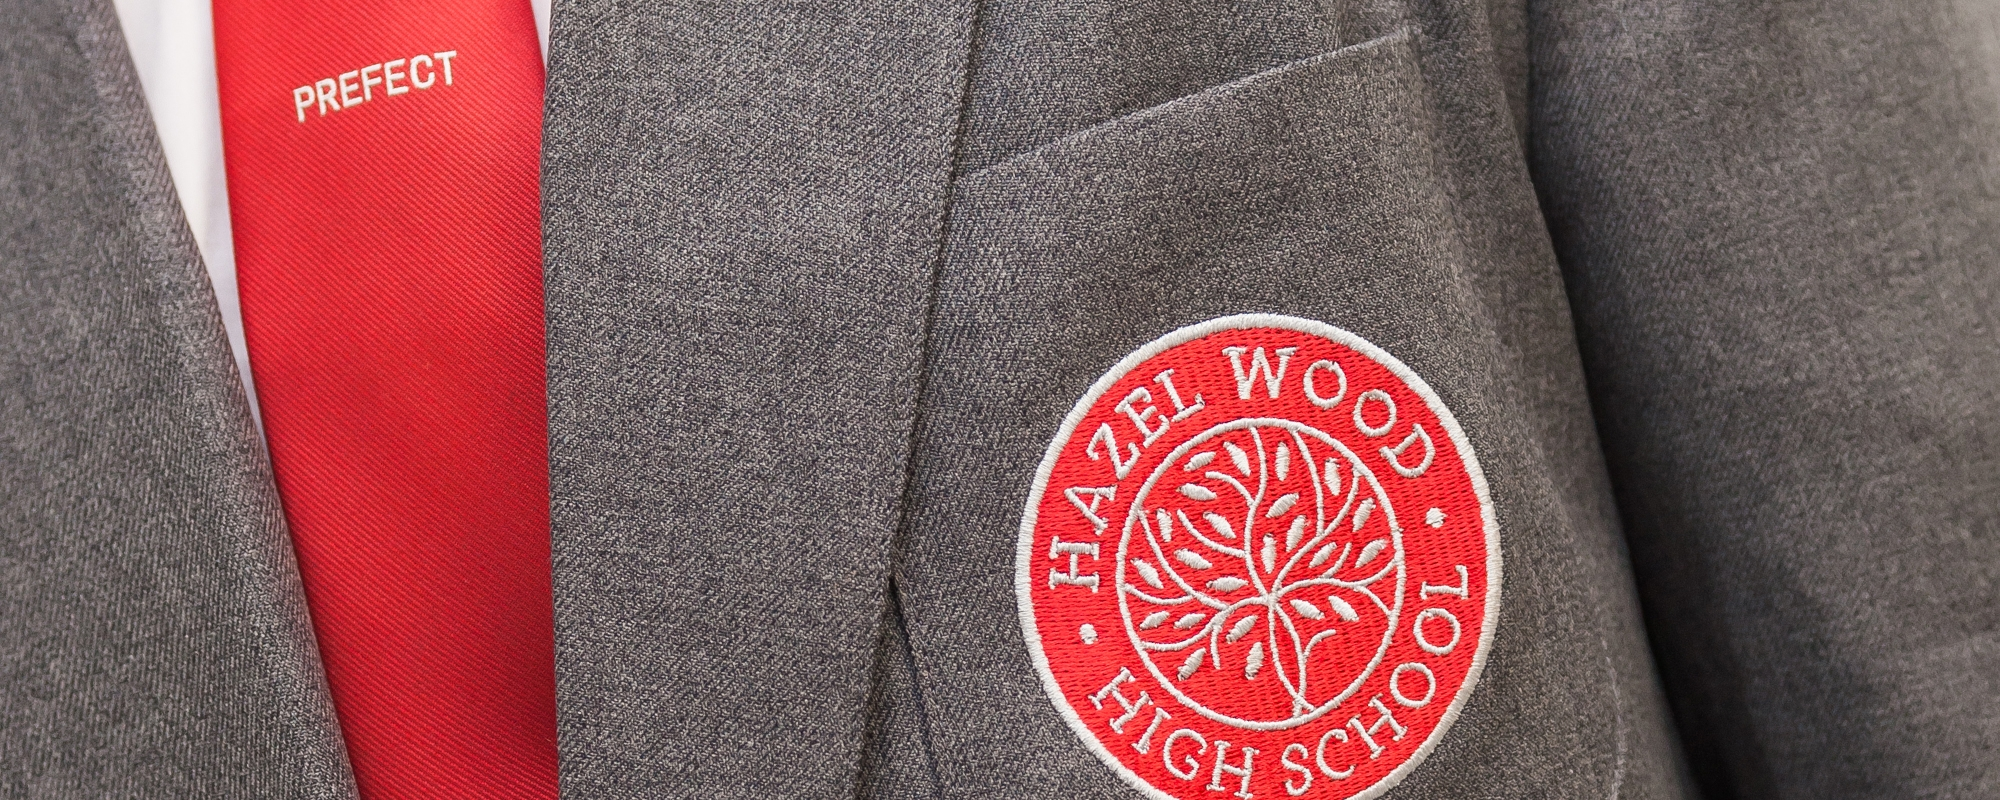 Hazel Wood High School uniform close up